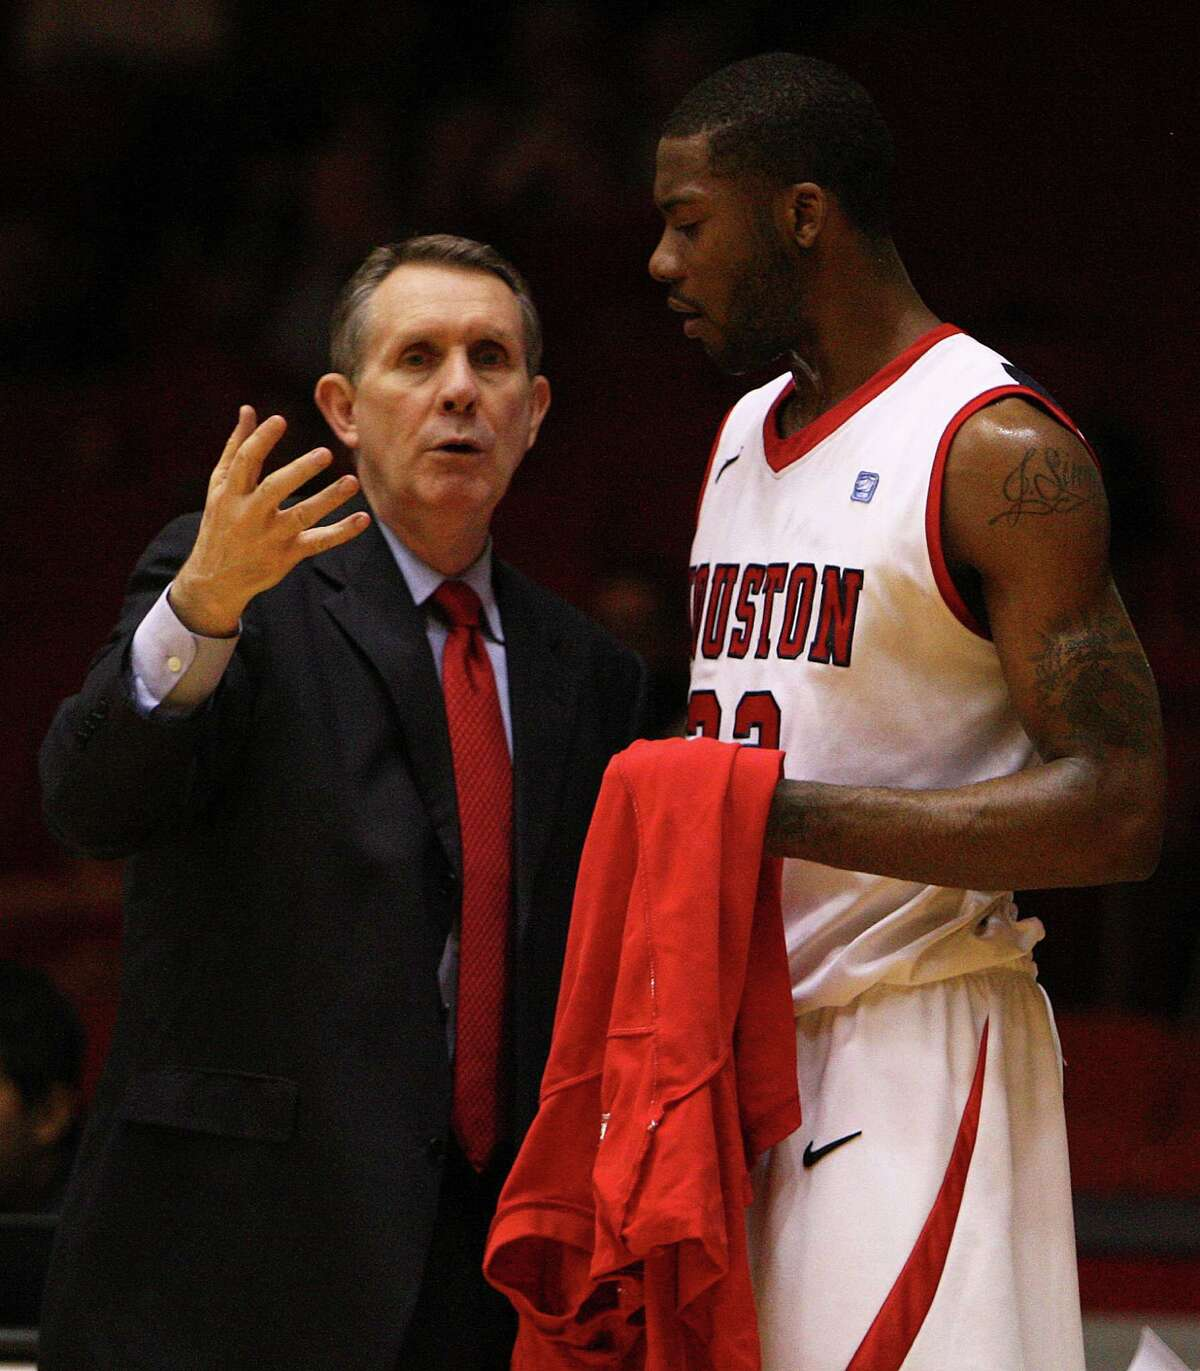 Houston head coach James Dickey speaks with Jonathon Simmons on the sidelines during the game against Tulane Hofheinz Pavilion on Feb. 29, 2012.